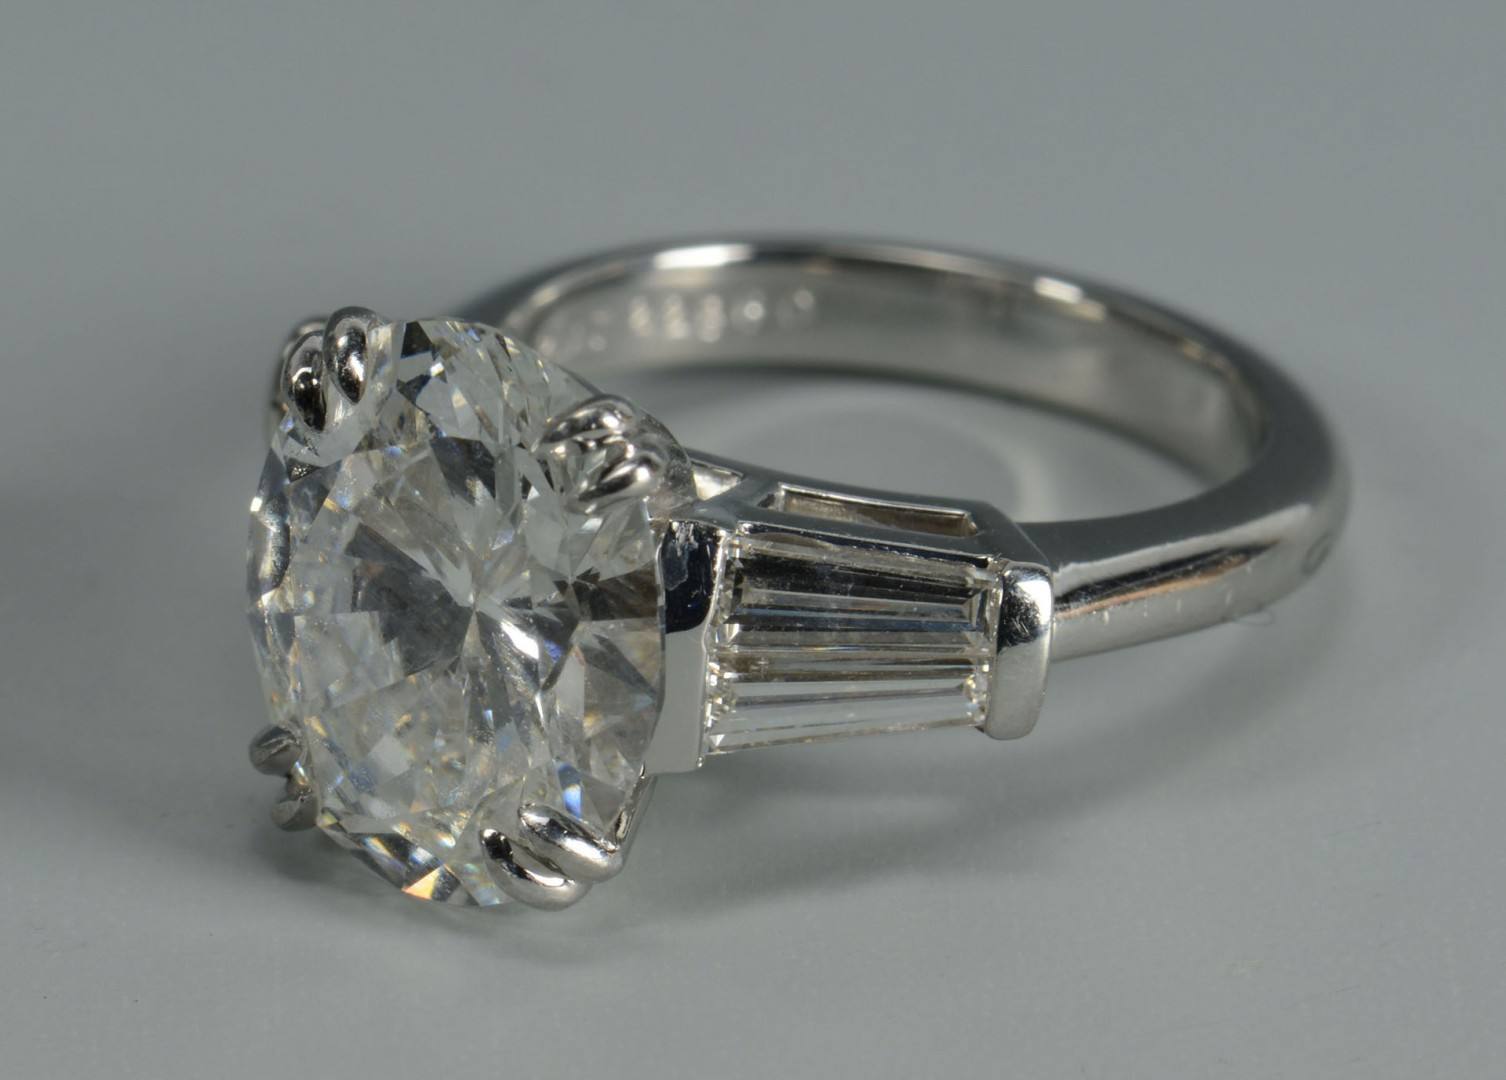 Lot 115: Plat Oval Brilliant 4.90 ct Diamond Ring, GIA repo